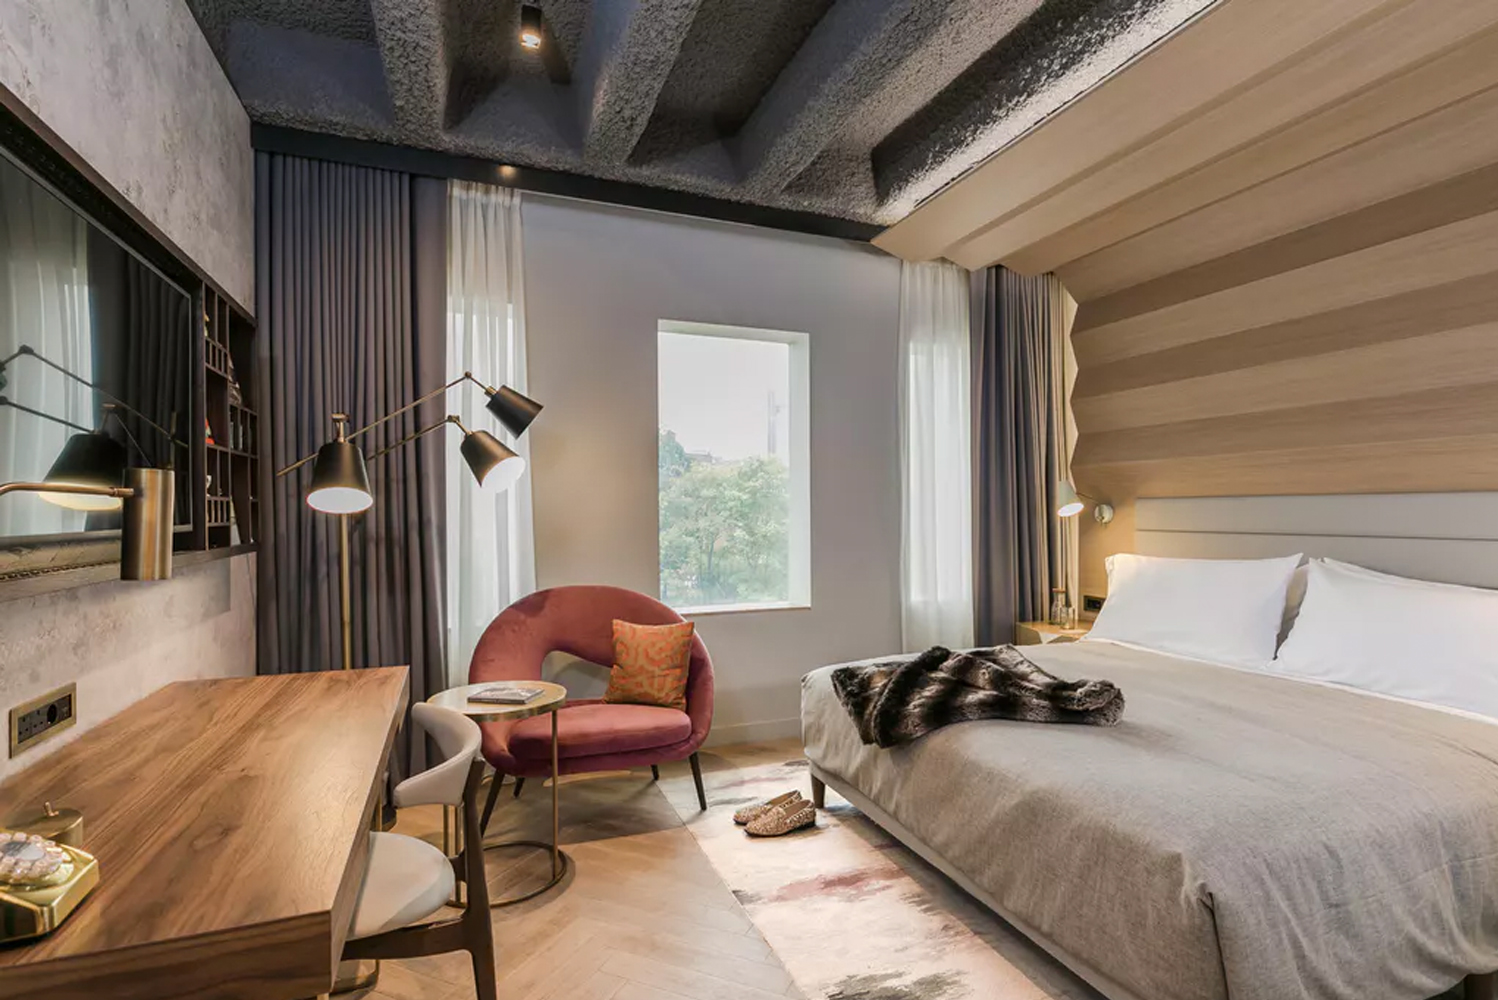 The property has 342 guestrooms, with the new fixtures and fittings developed using local Aldgate and Whitechapel references.